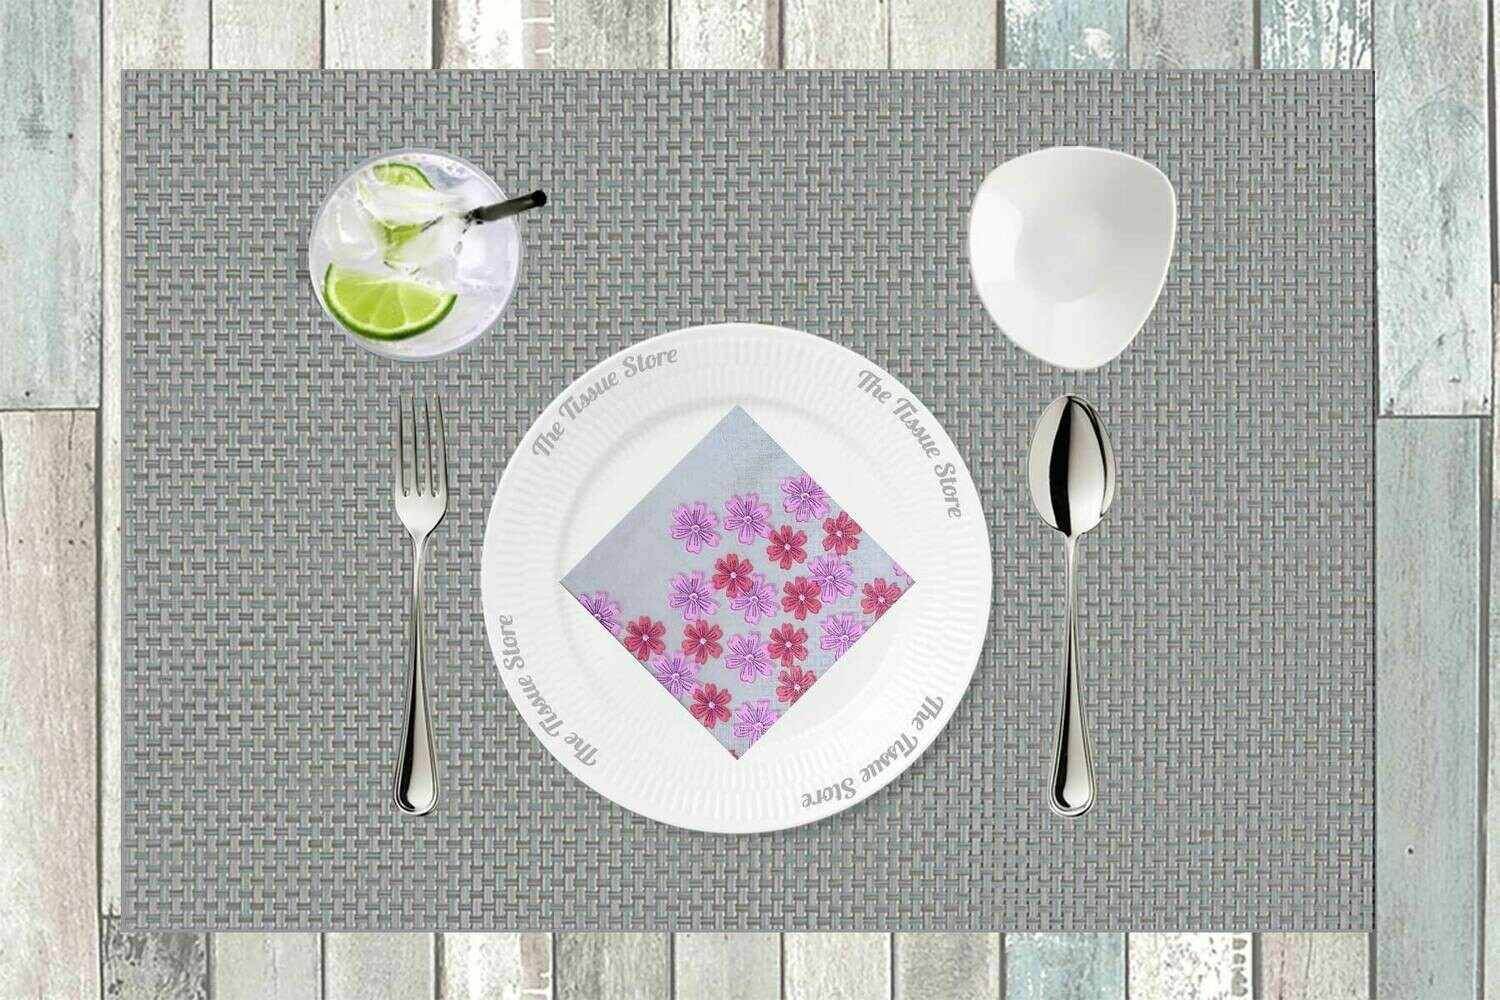 Breakfast / Cocktail Paper Napkin - Grey with Red & Pink Flowers 9x9- (Pack of 20)